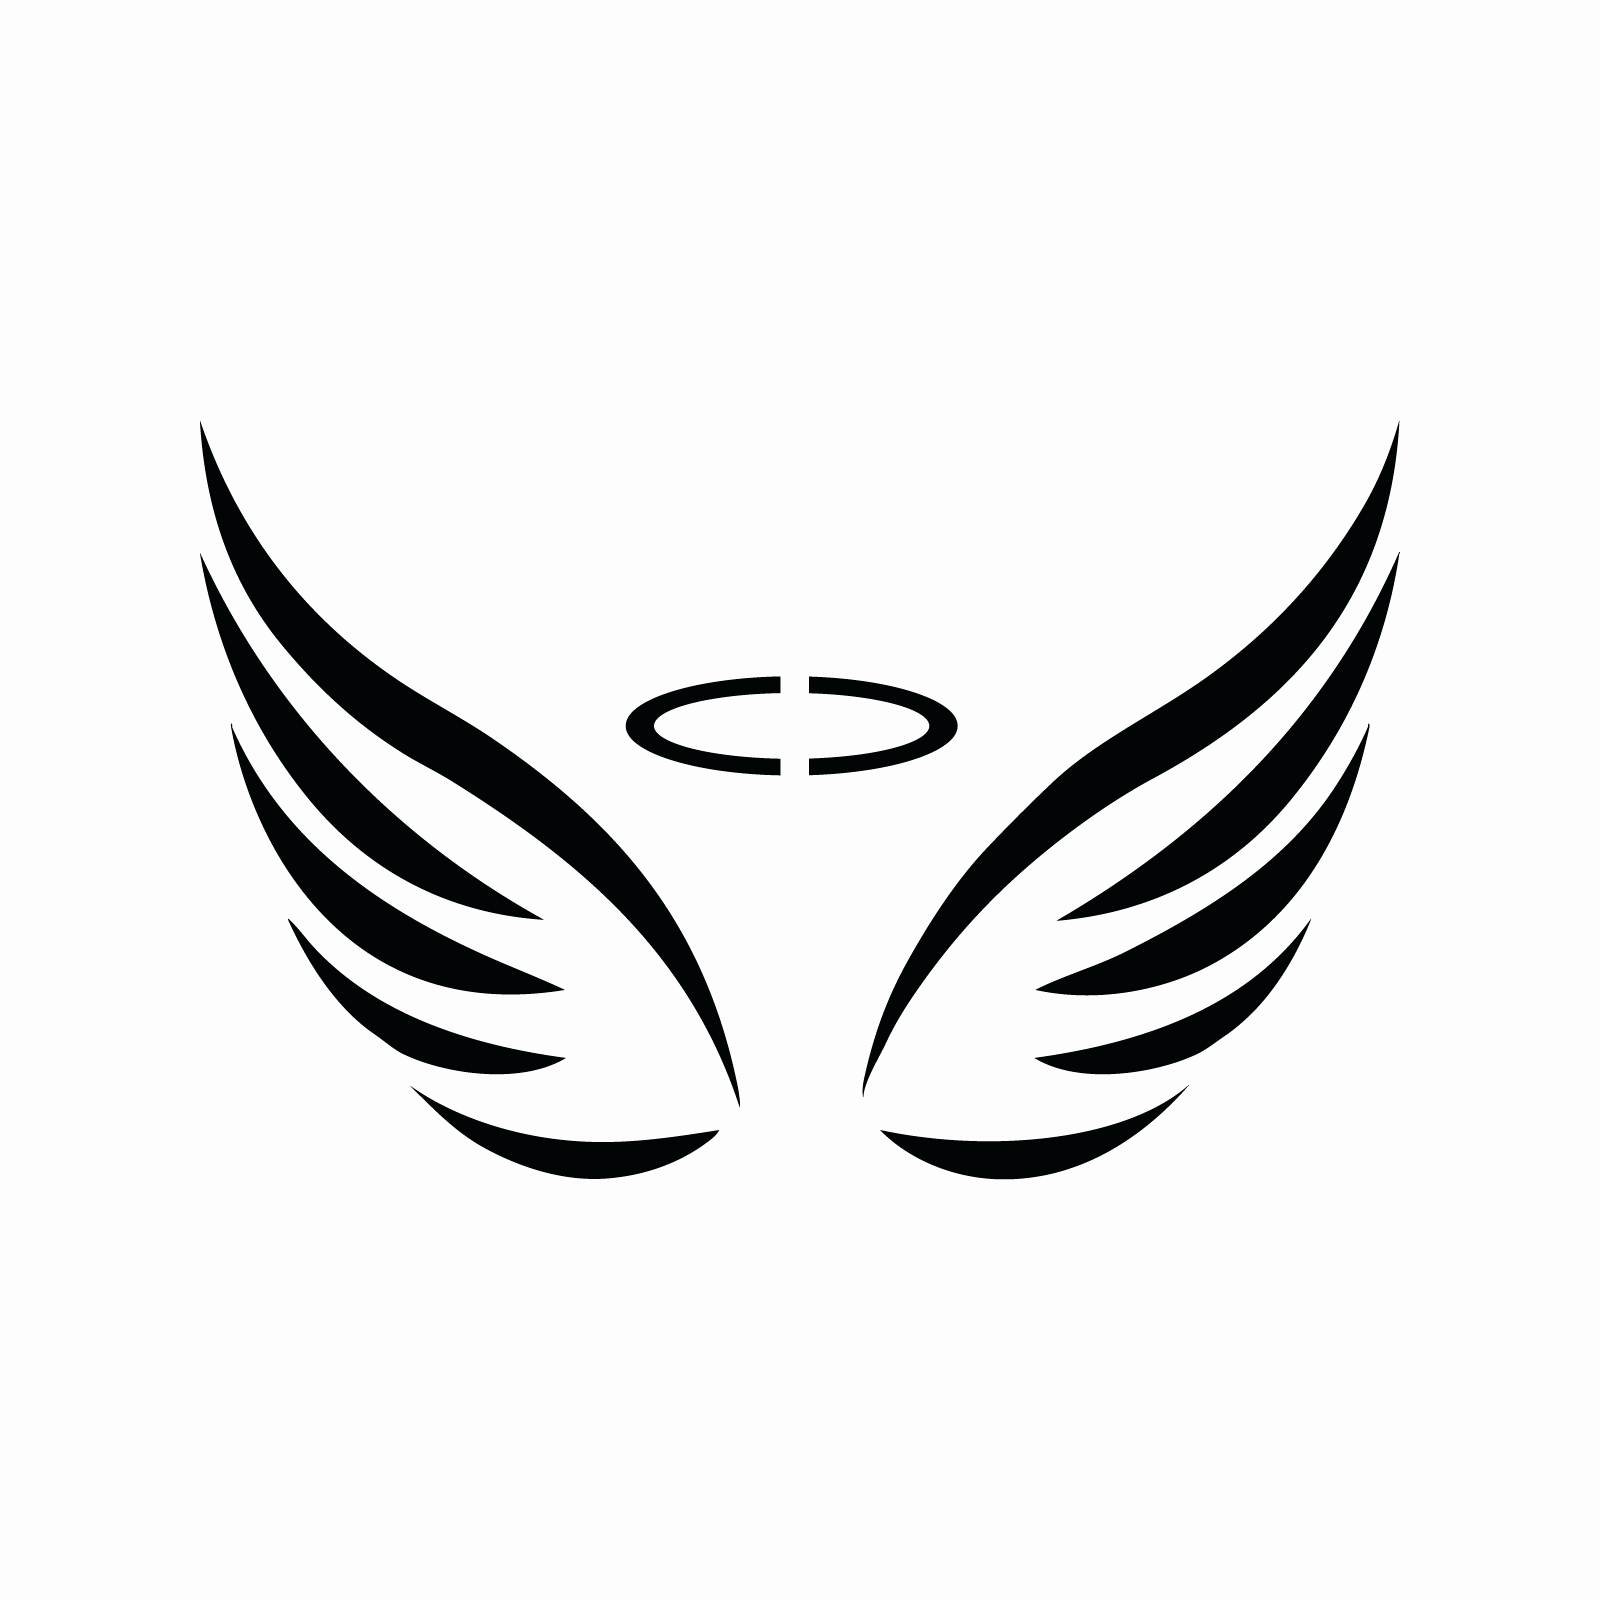 Angel Wing Stencil Printable Fresh Angel Wings Stencil Silhouette 3 Fun